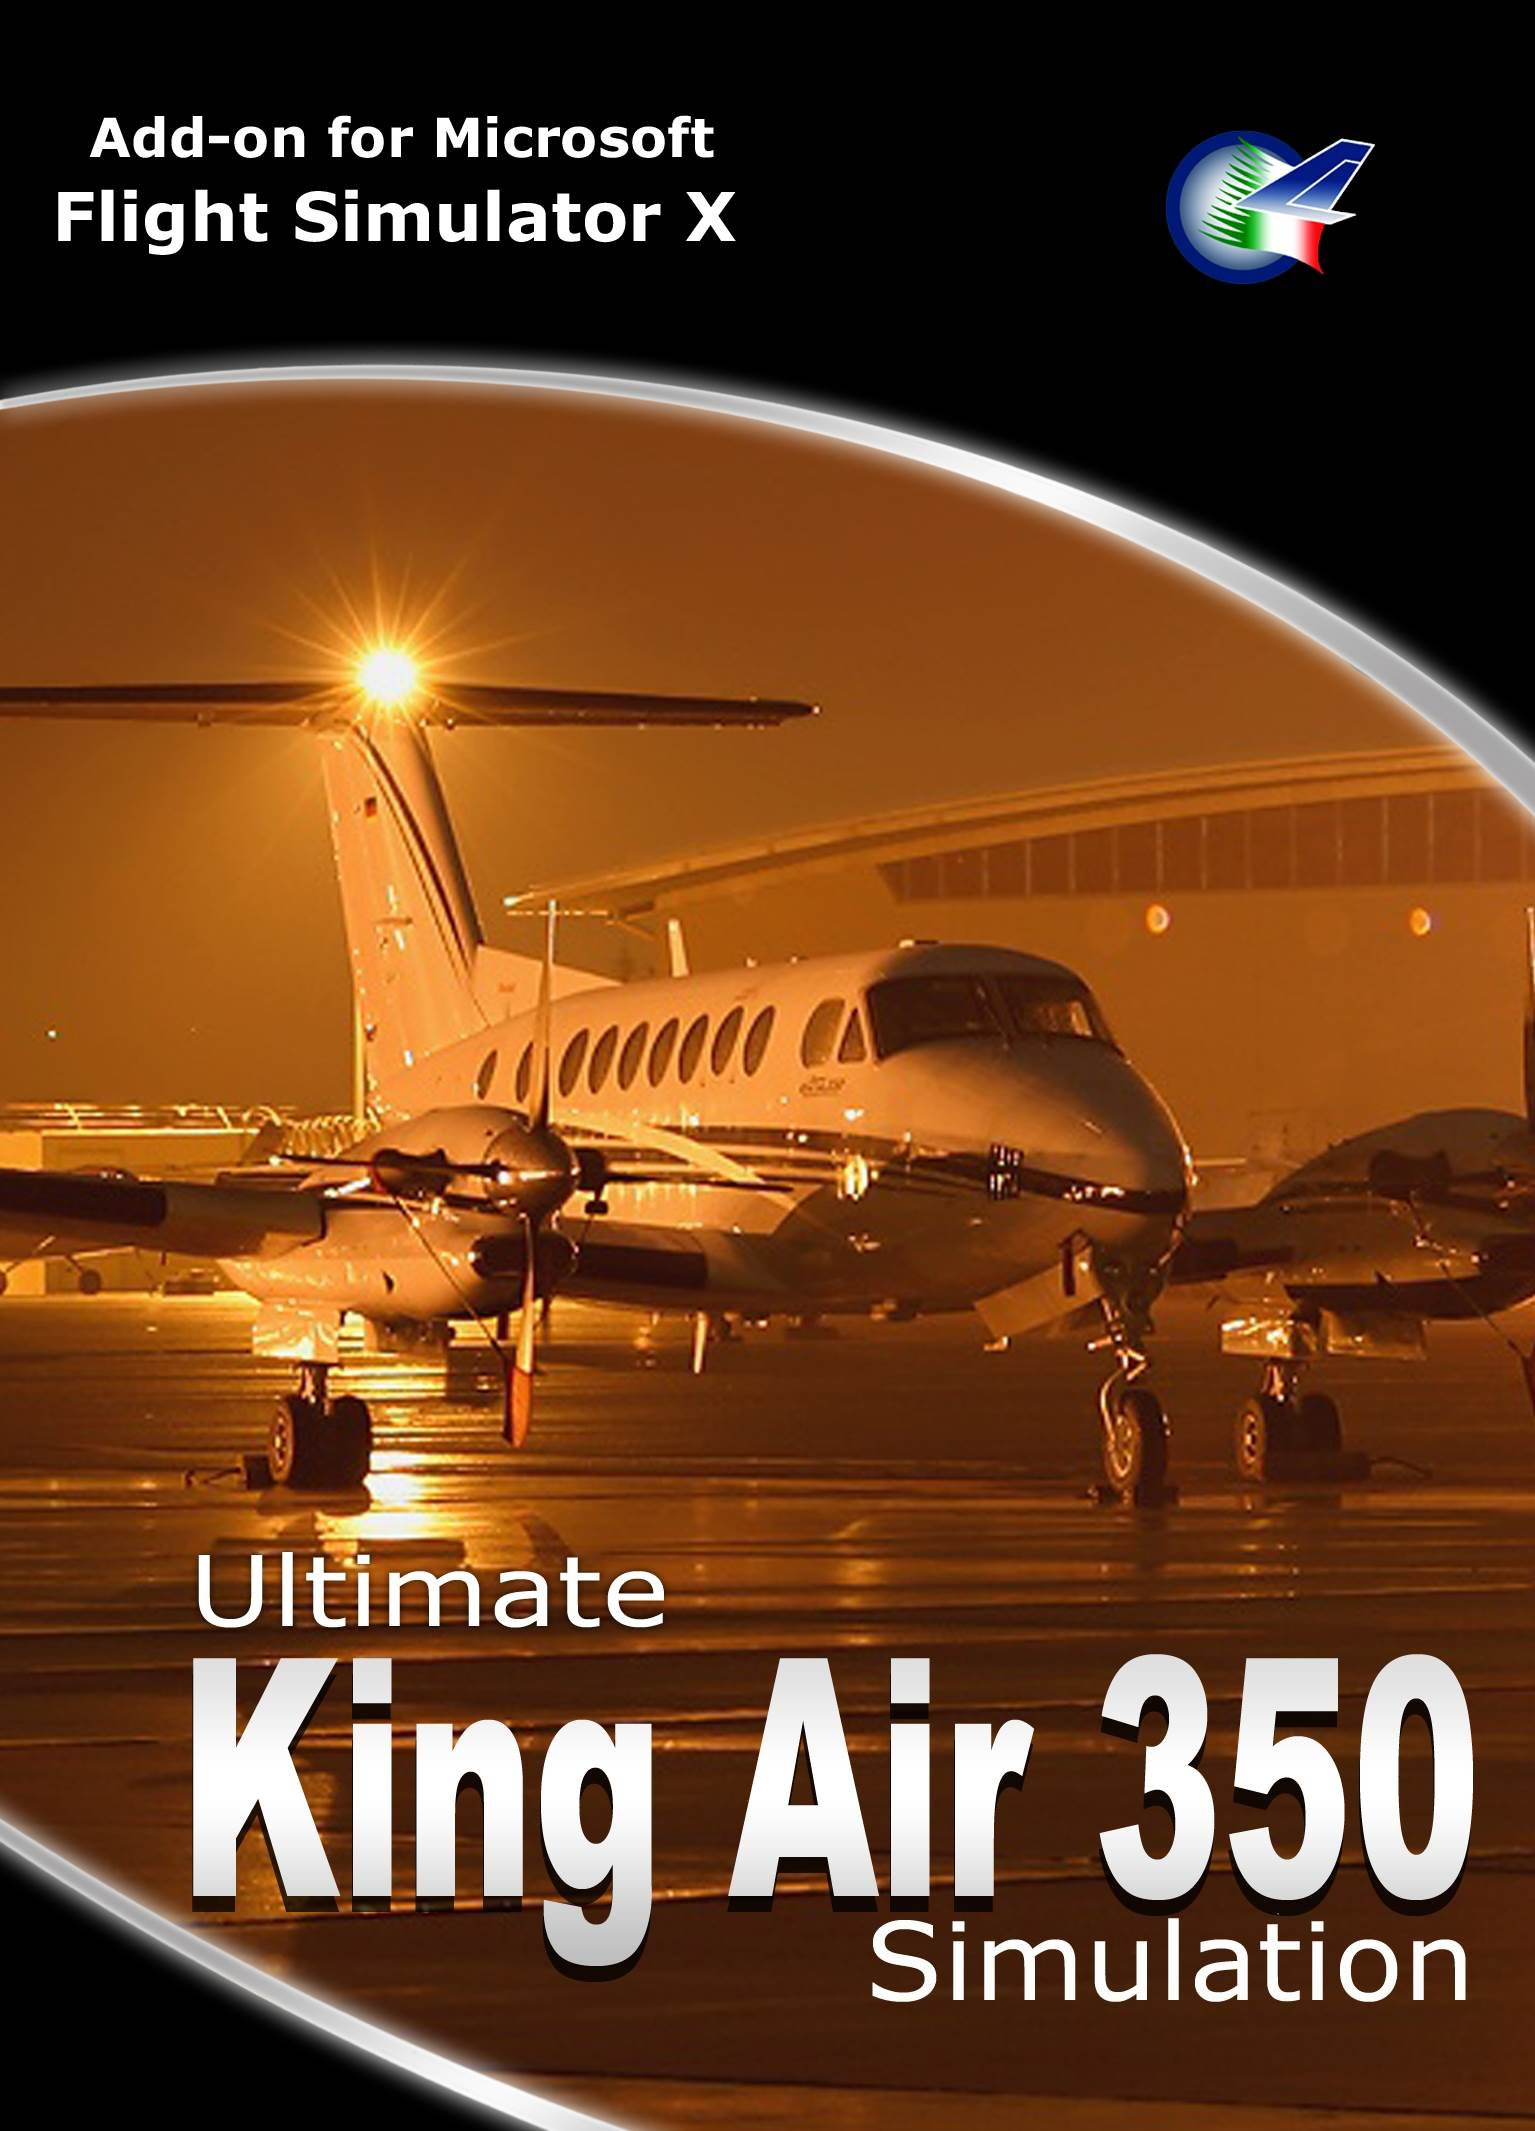 Ultimate King Air 350 Simulation